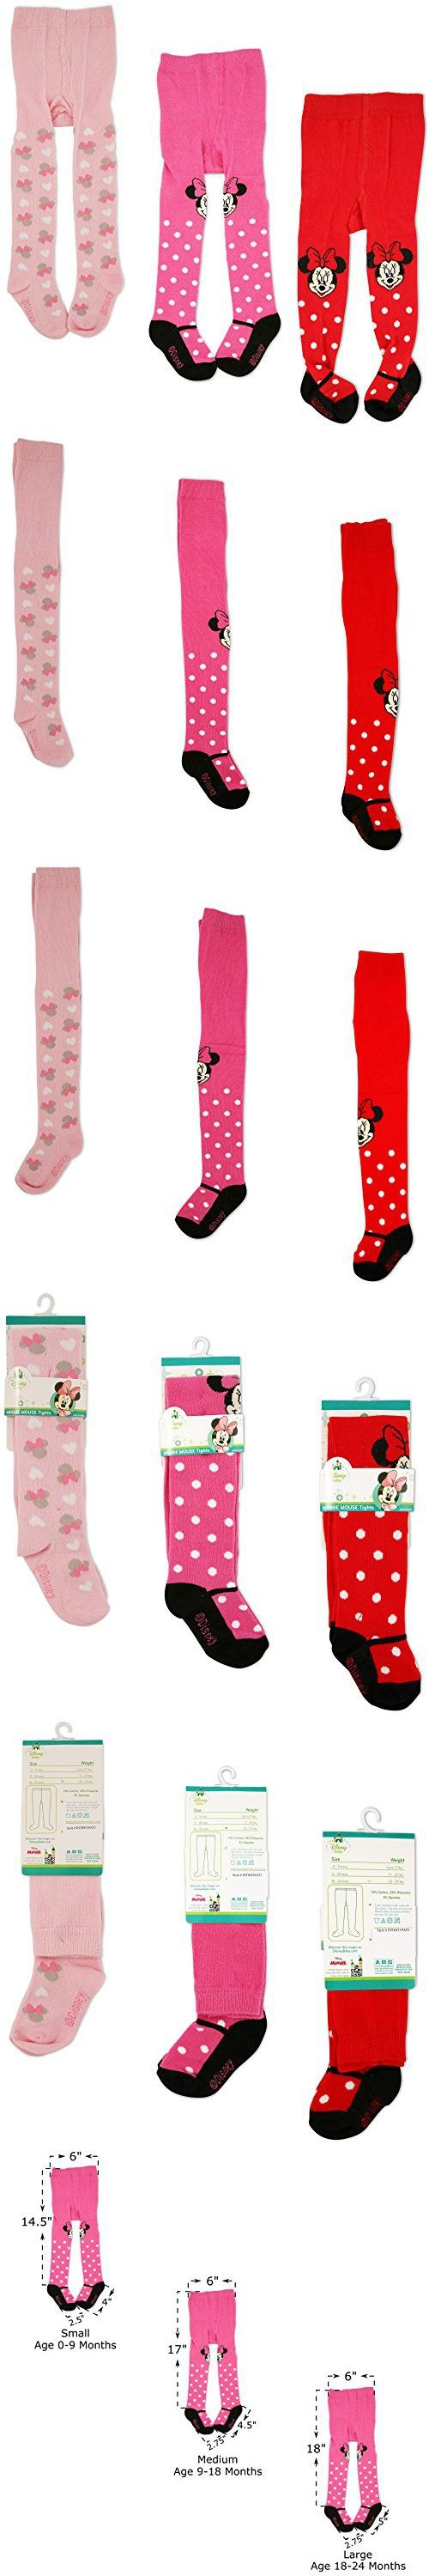 Disney Baby Girls Minnie Mouse Polka Dot Tights Multi-Color Variety Pack